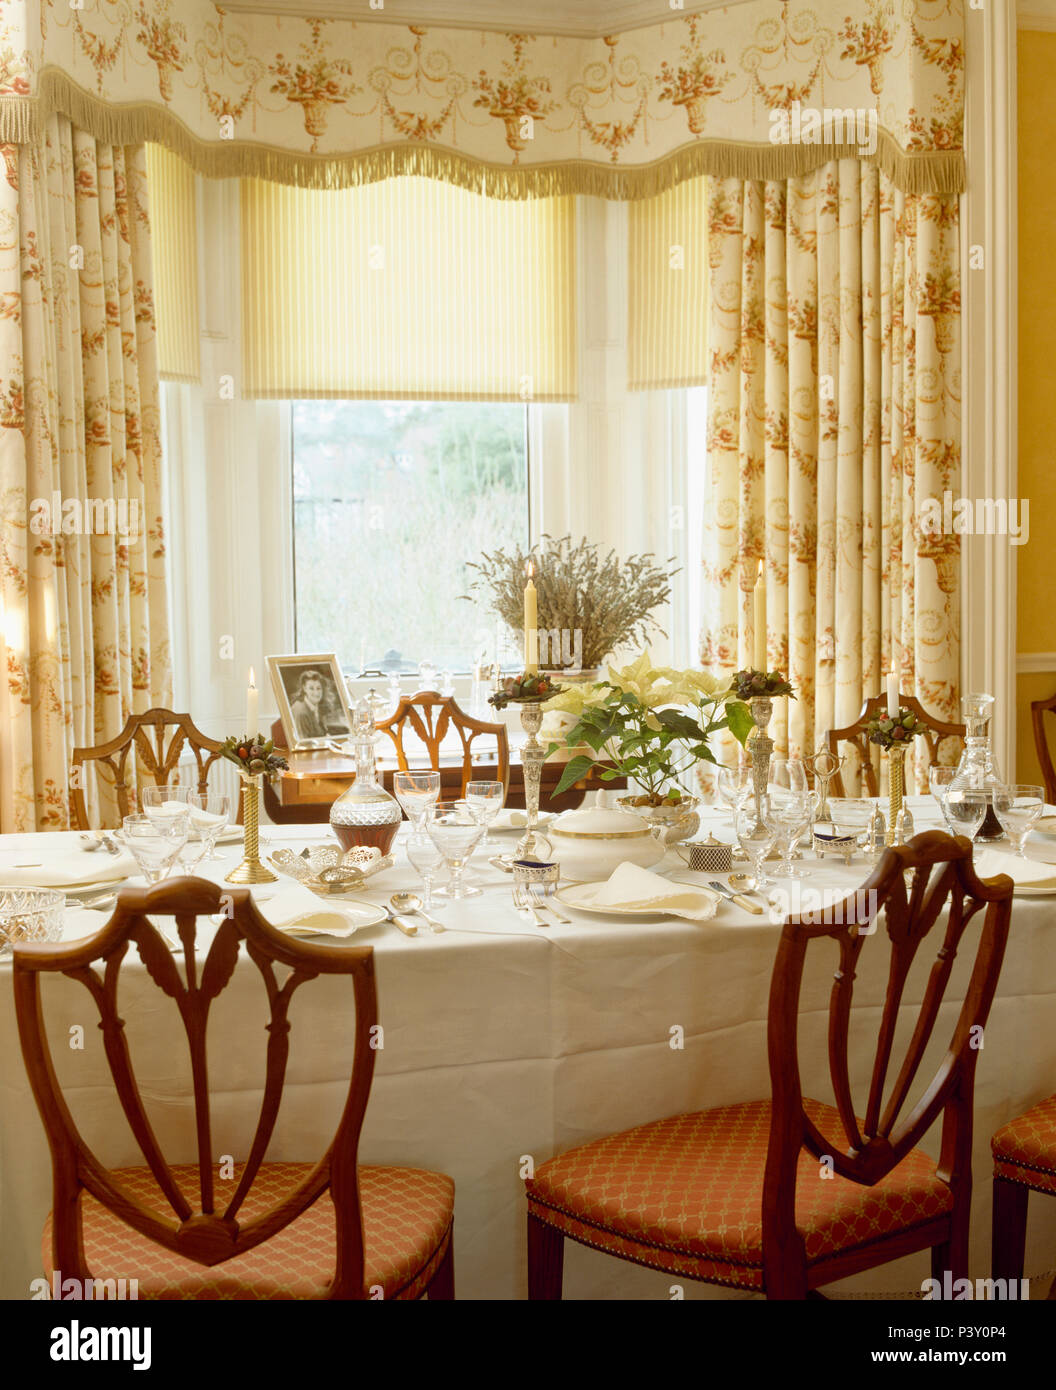 Cream Blind And Floral Curtains With Fringed Trim On Window In Dining Room With White Linen Cloth On Table Set For Lunch Stock Photo Alamy